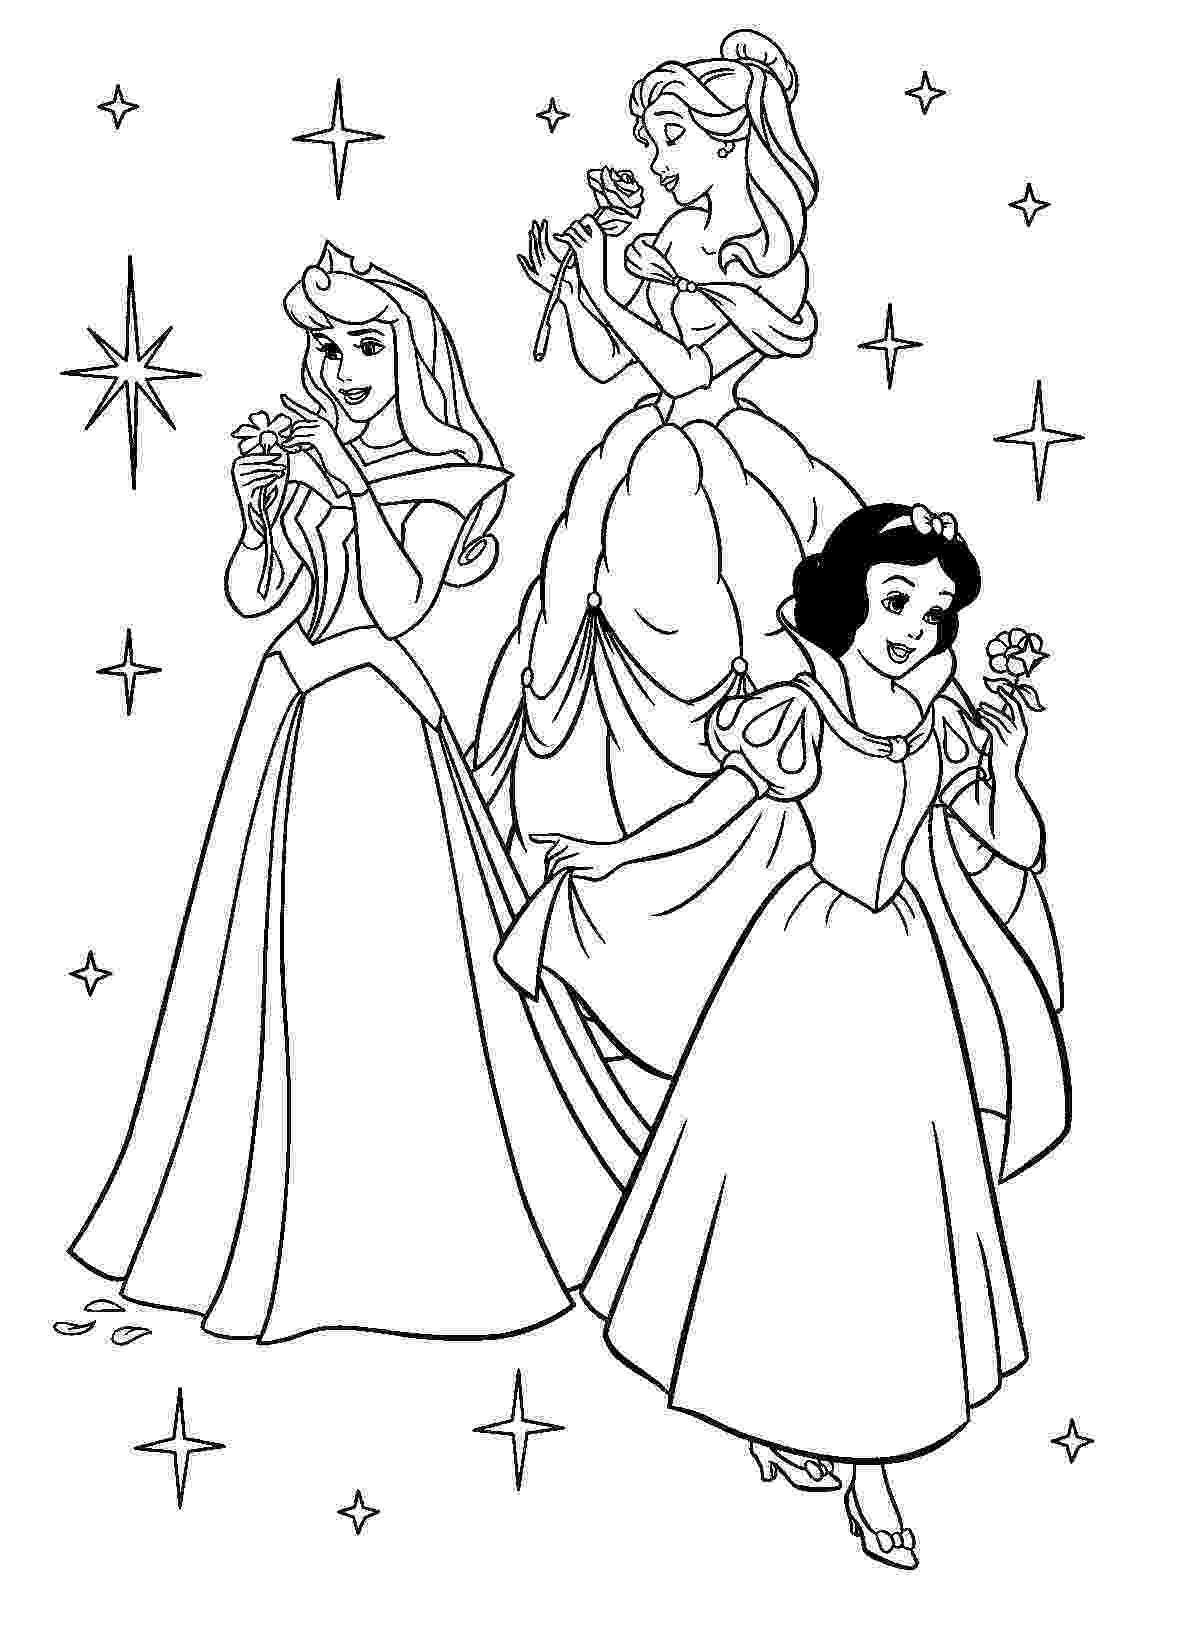 coloring pages princesses princess coloring pages best coloring pages for kids pages coloring princesses